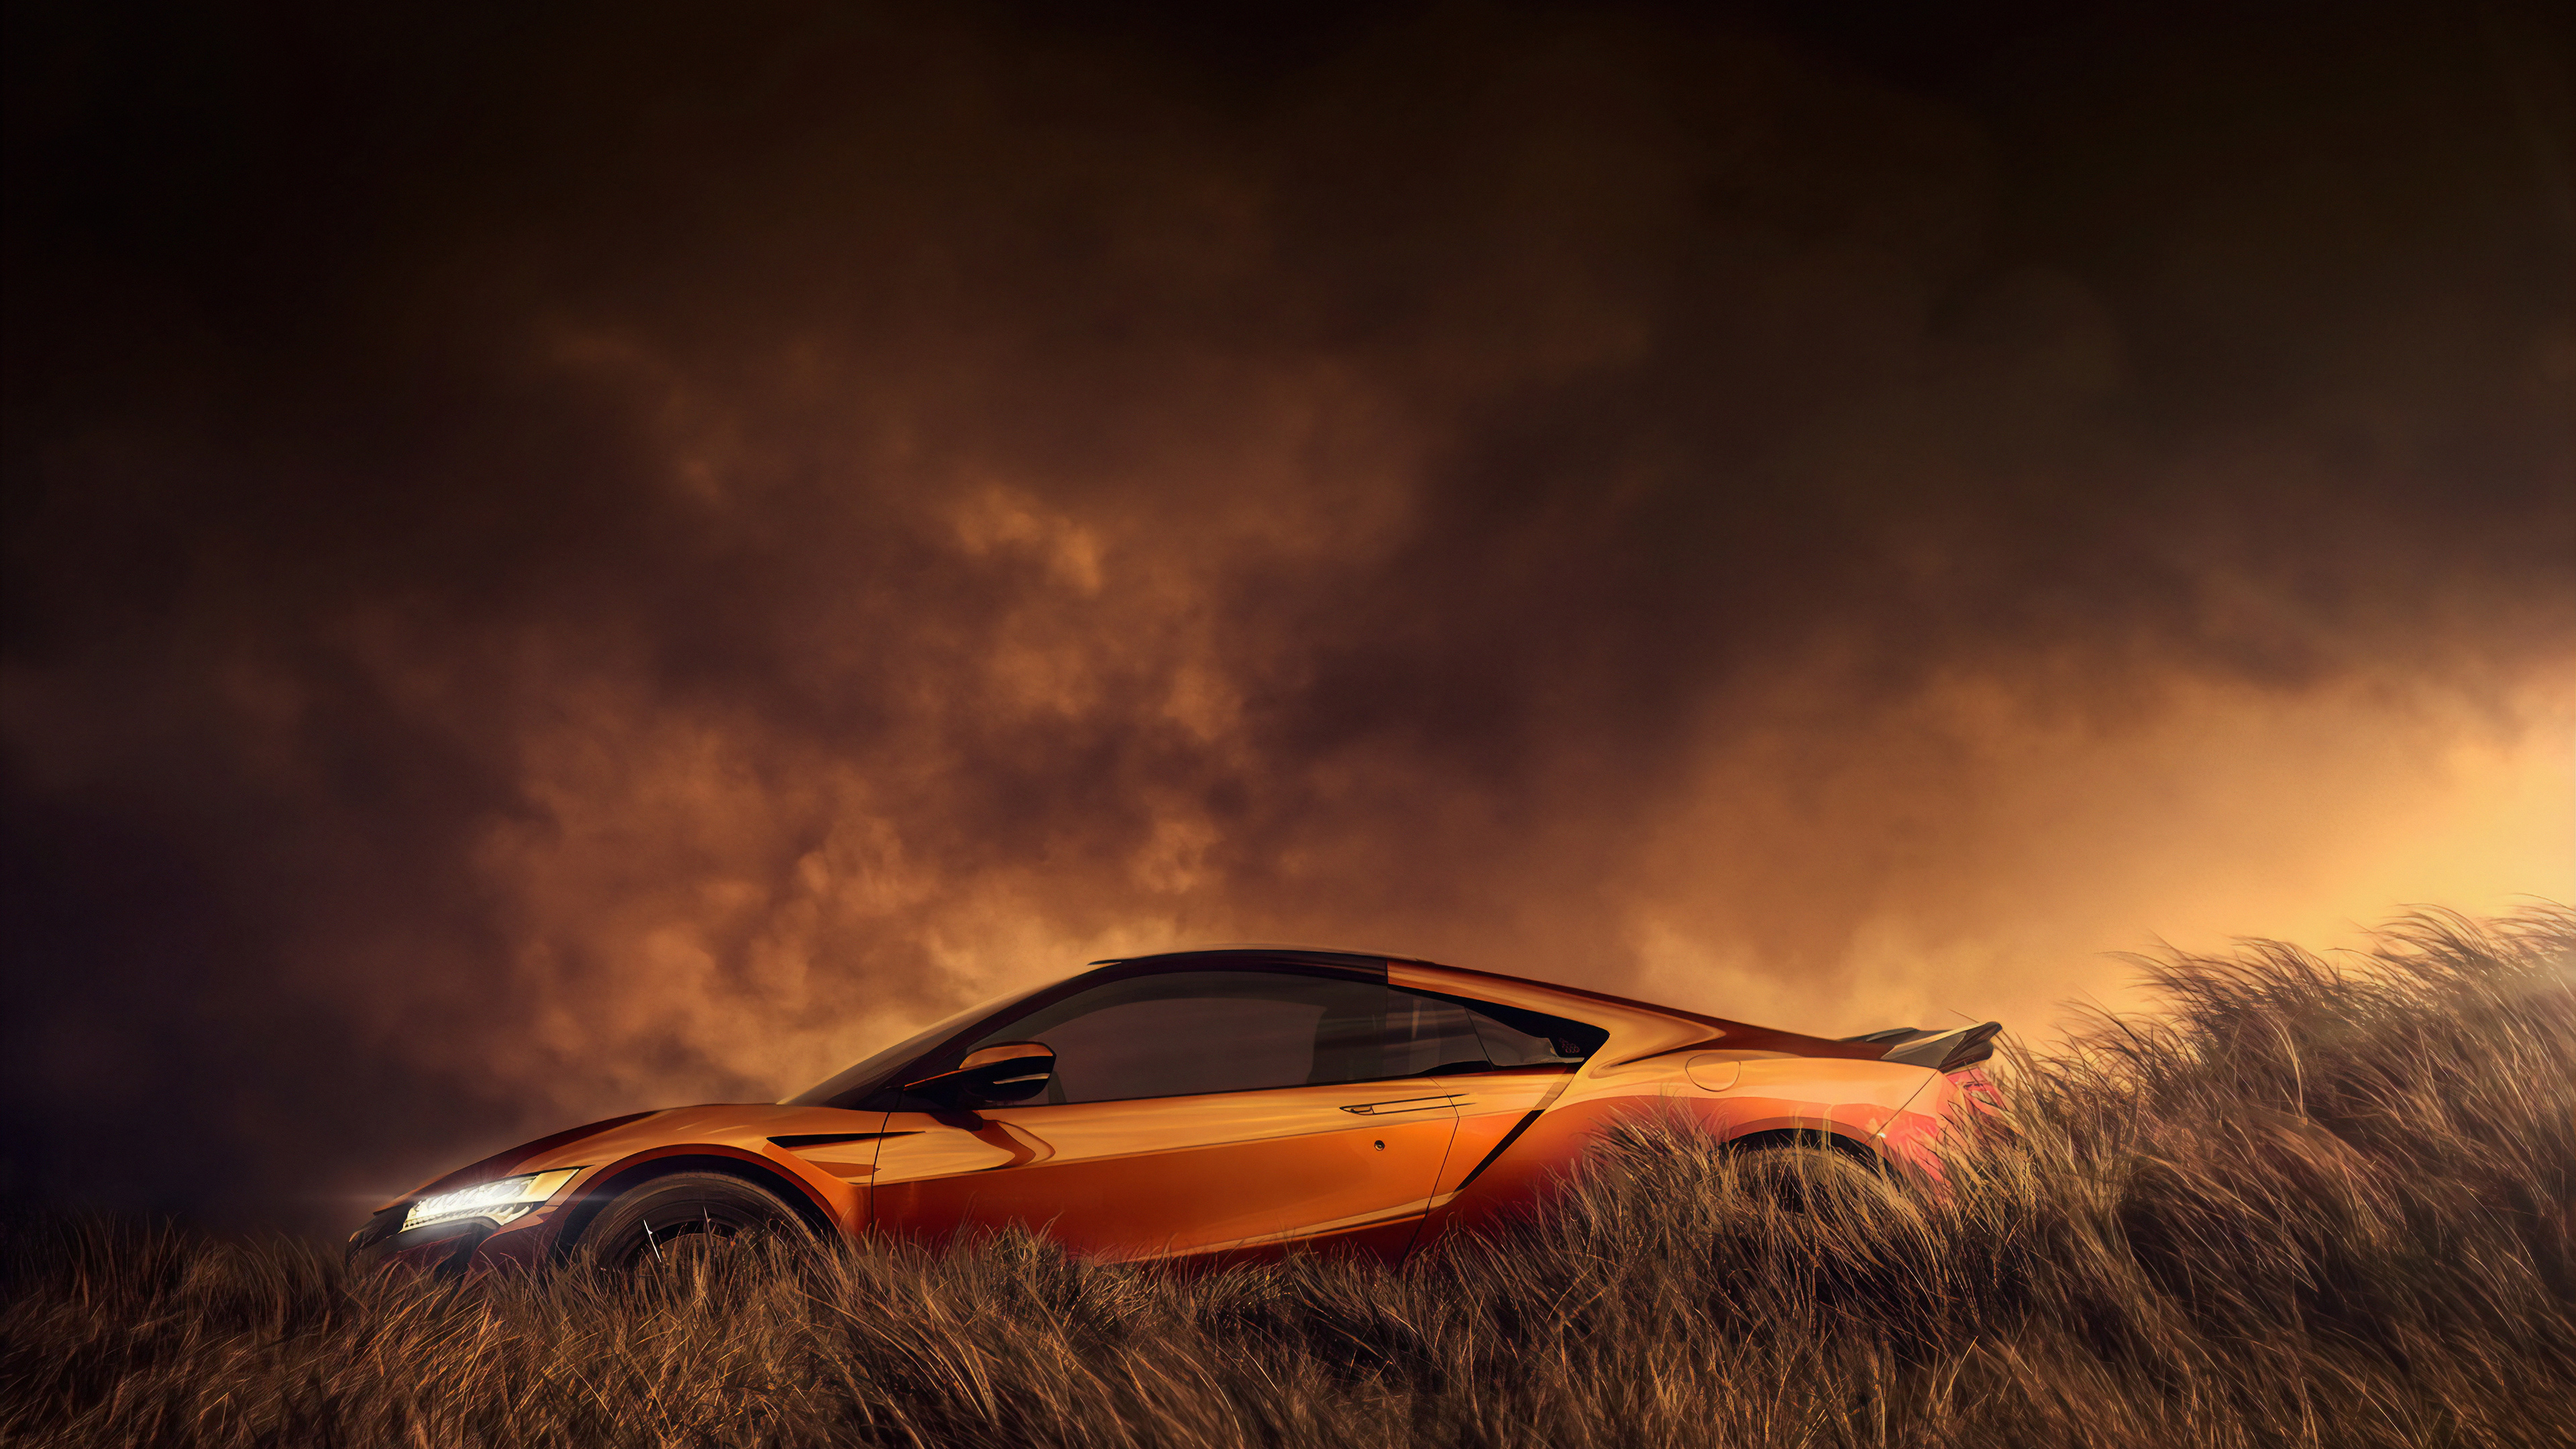 acura nsx new 1565055046 - Acura Nsx New - hd-wallpapers, cars wallpapers, behance wallpapers, acura nsx wallpapers, 4k-wallpapers, 2019 cars wallpapers